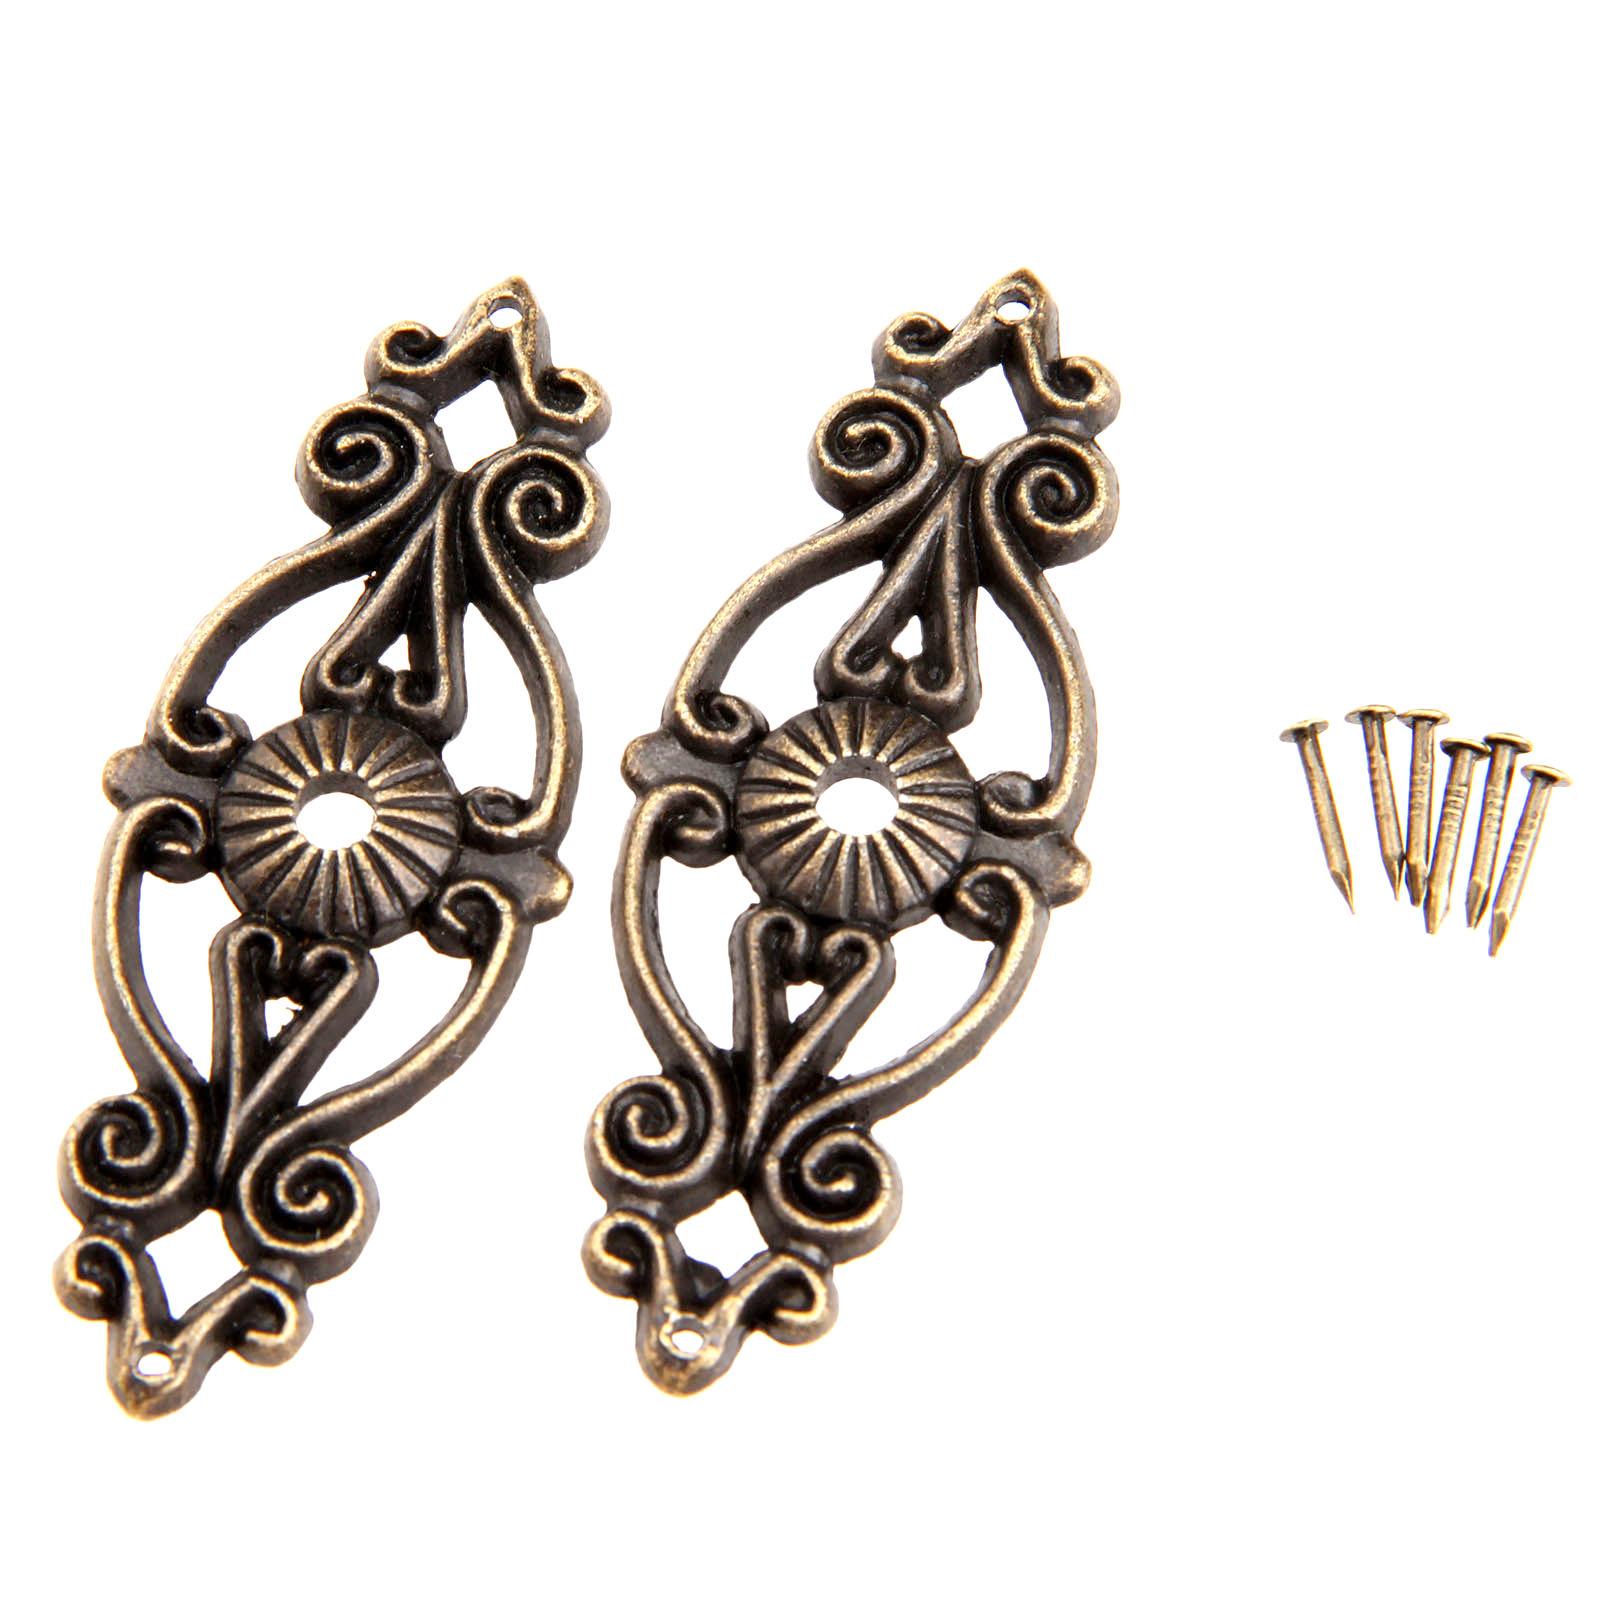 2Pcs Antique Bronze Decorative Jewelry Gift Box Album Feet Leg Corner Protector Iron Furniture Fittings With Nails 63*24mm